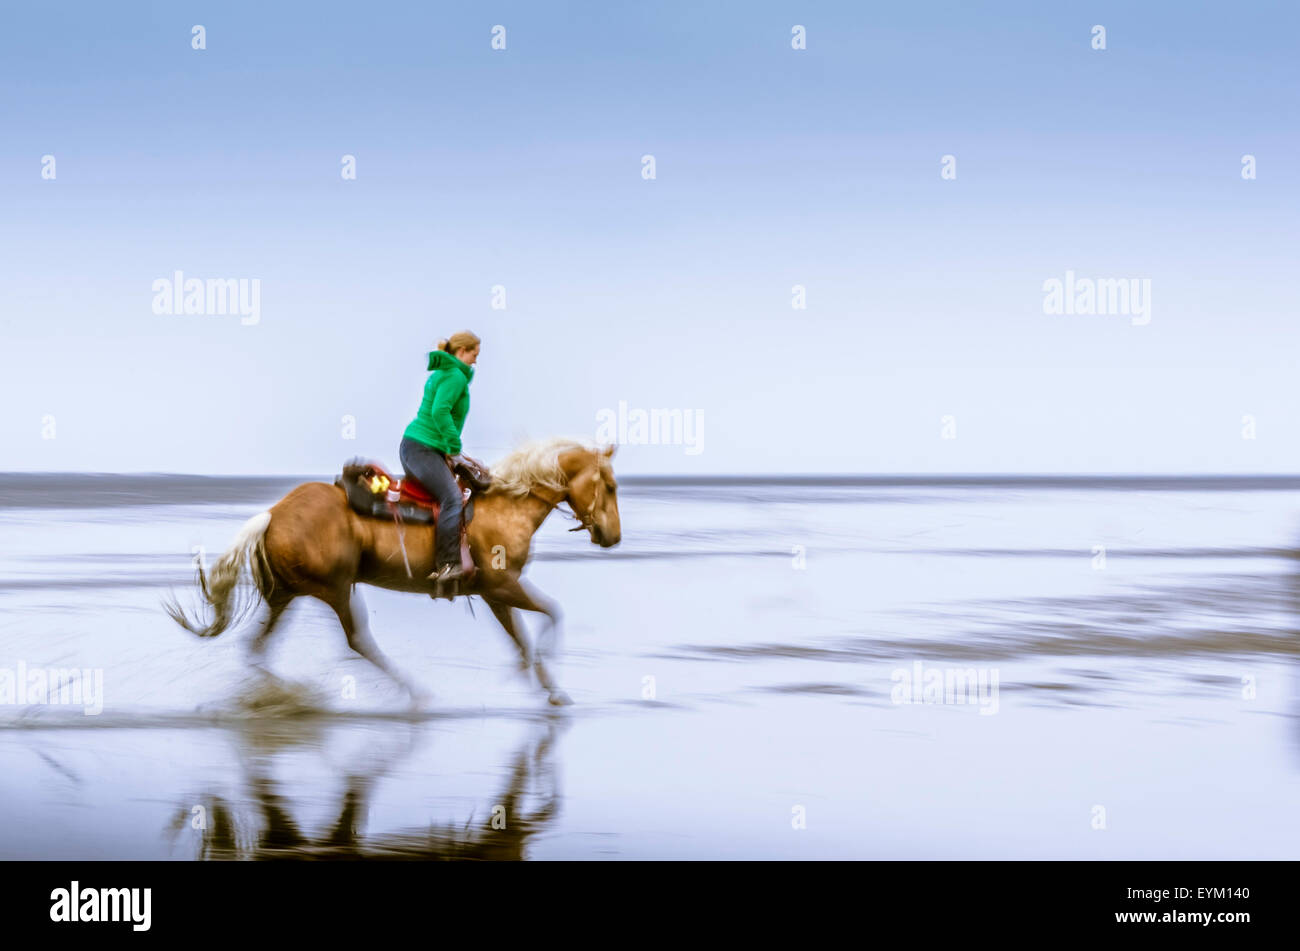 Germany, low things, new plant, Cuxhaven, wadden sea, mud flats, woman, horse, - Stock Image